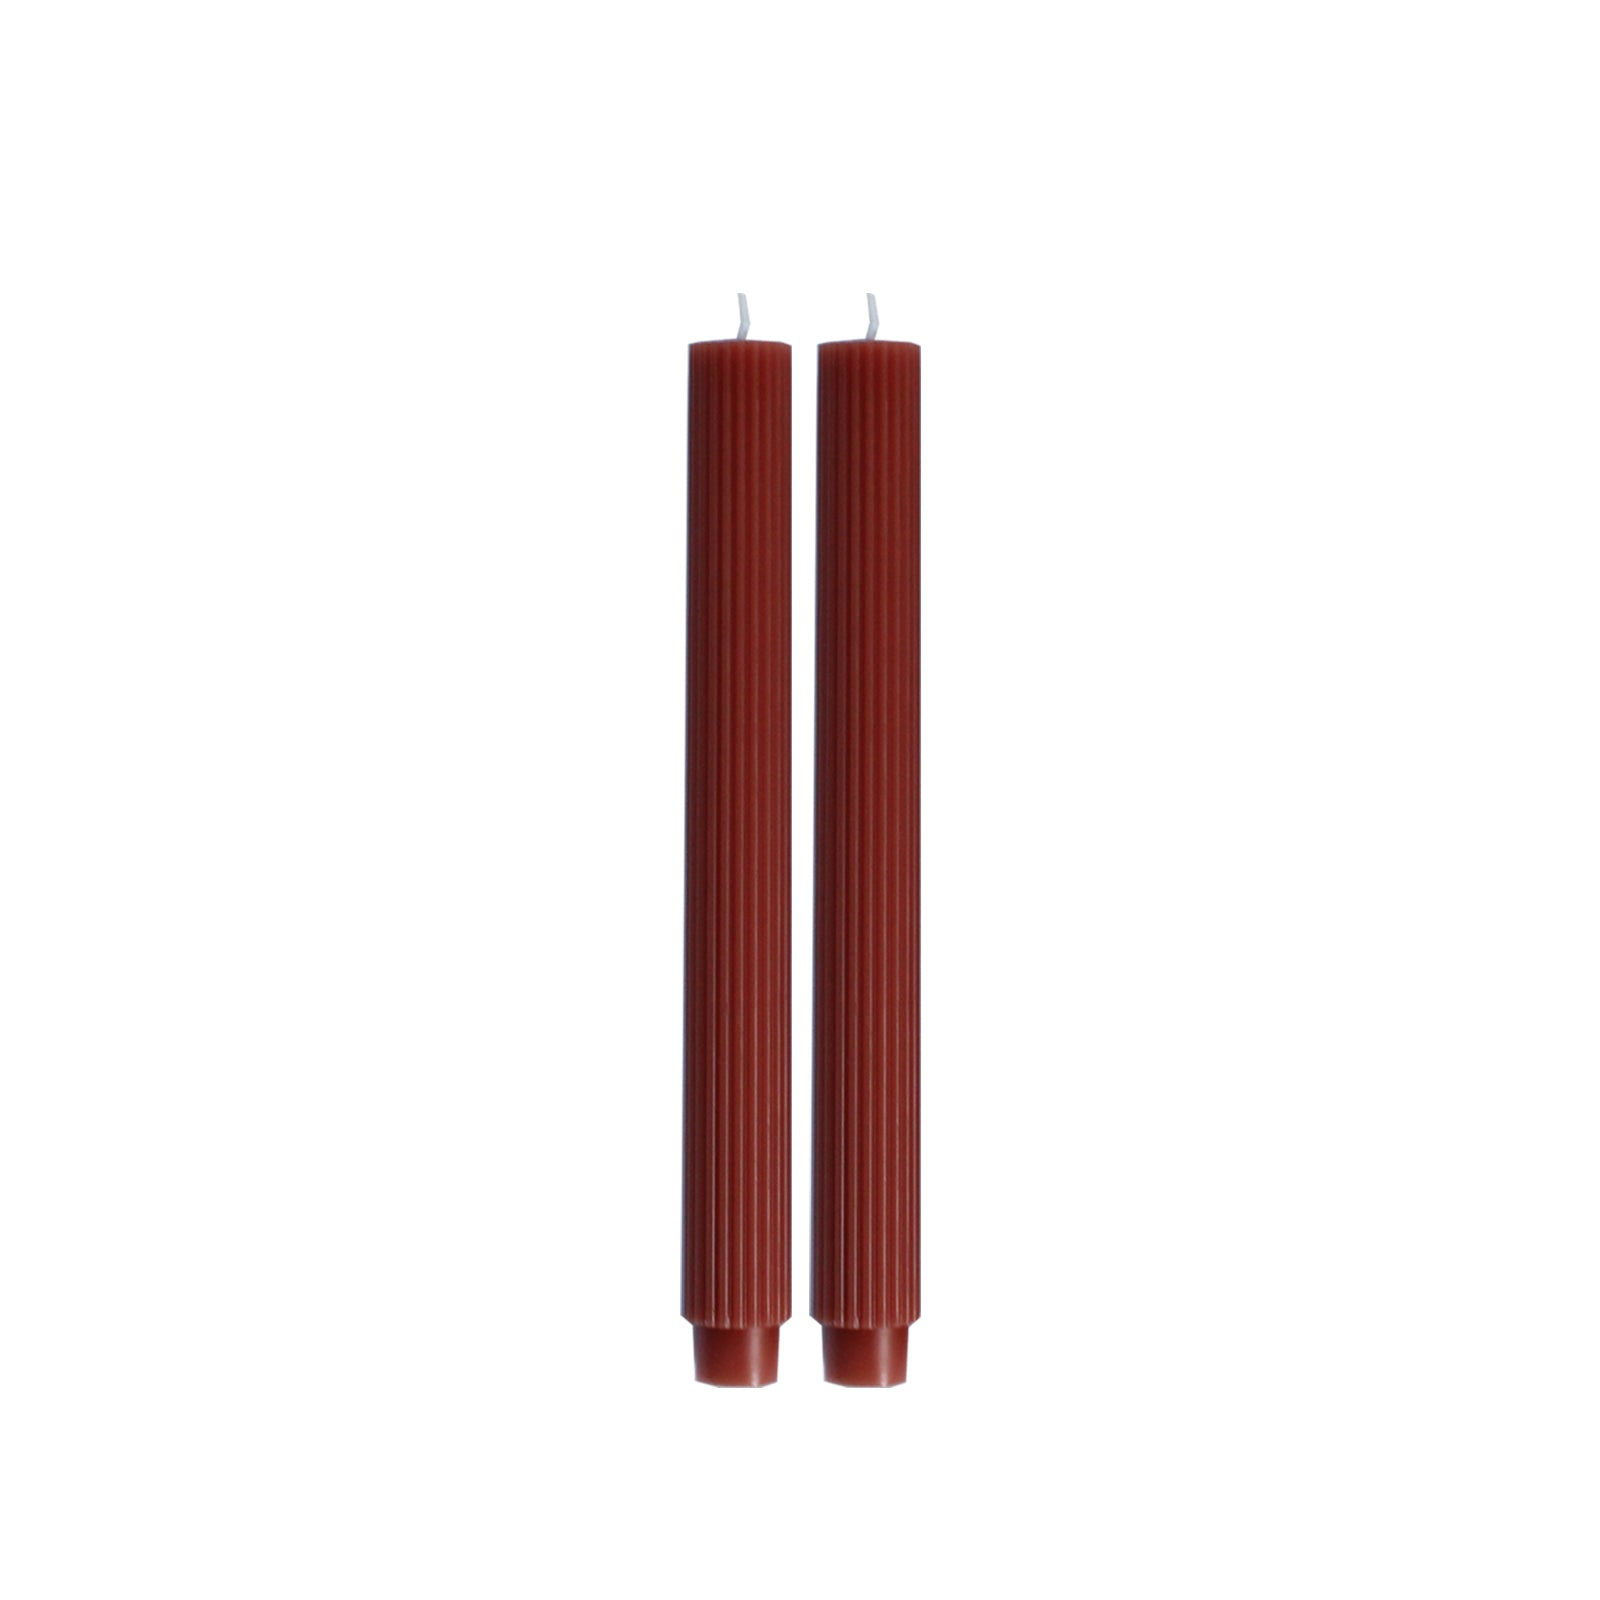 Reeded Clay Taper Candle